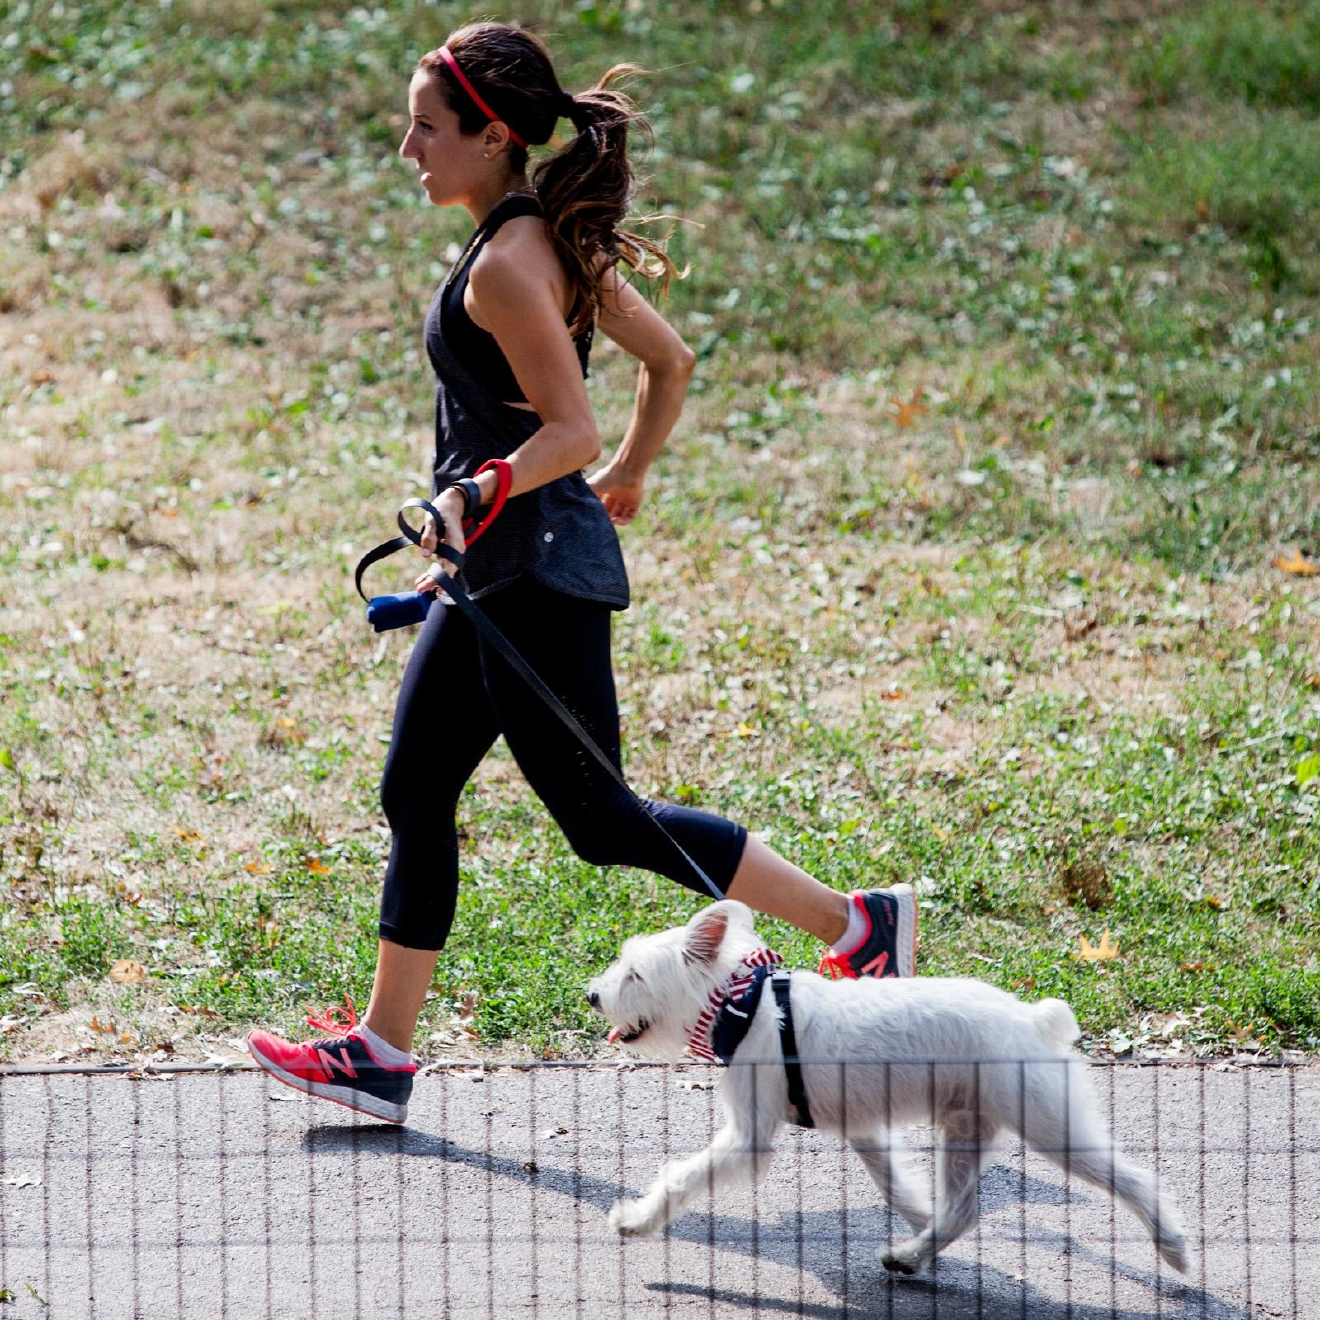 If you're a runner with an energetic pup, it's a no-brainer to invite your furry friend along as you log your miles. (Photo: Robert Stoetzel of Dog & Co.)